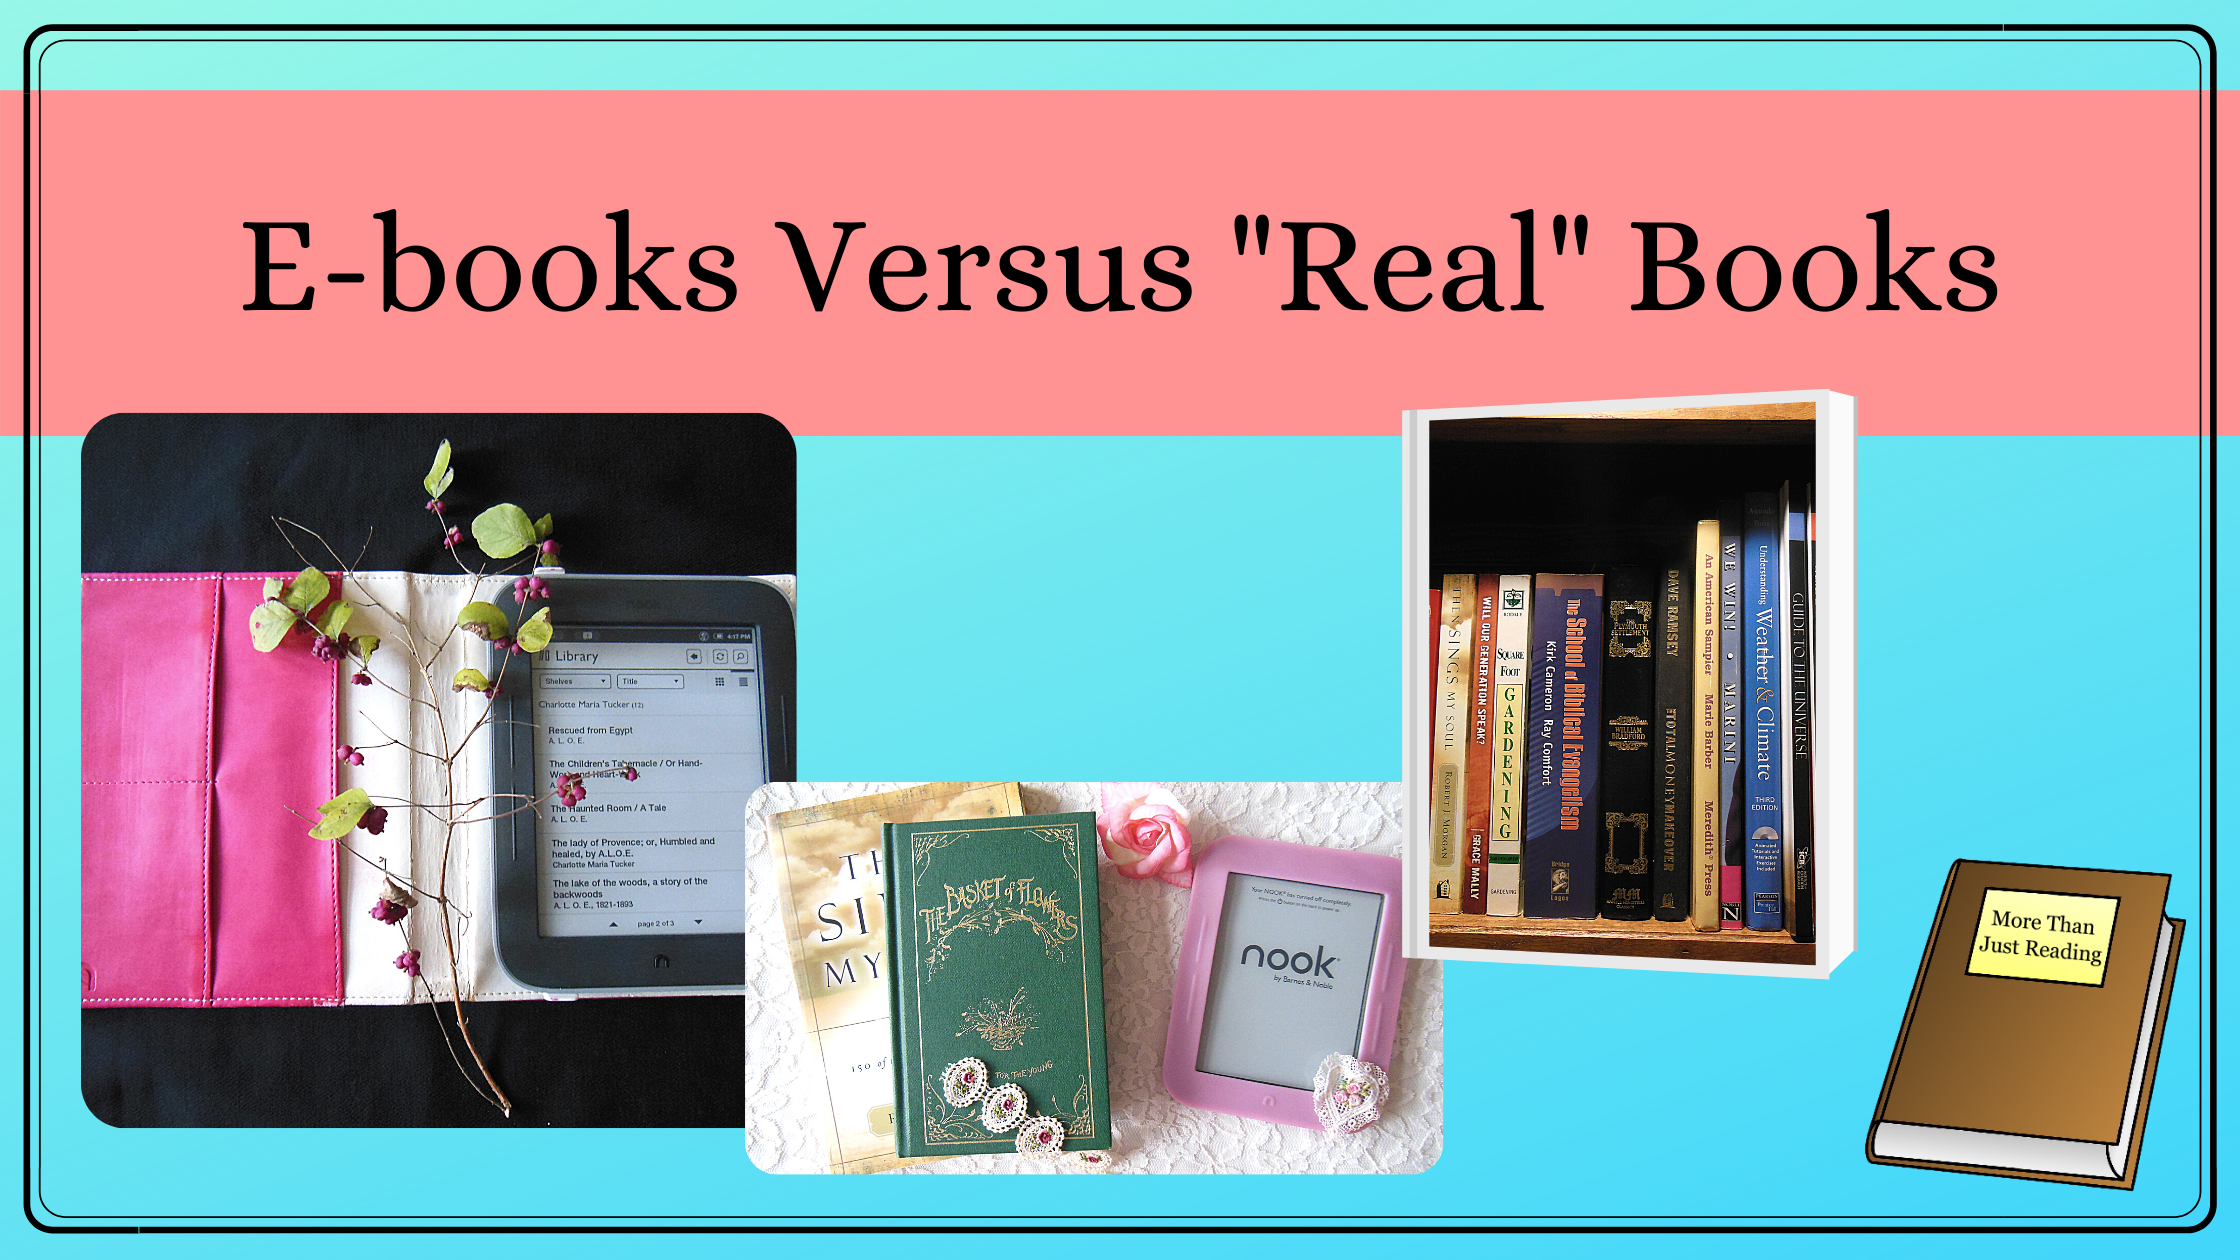 Banner with Blogpost Title and Pictures of E-books and Real Books